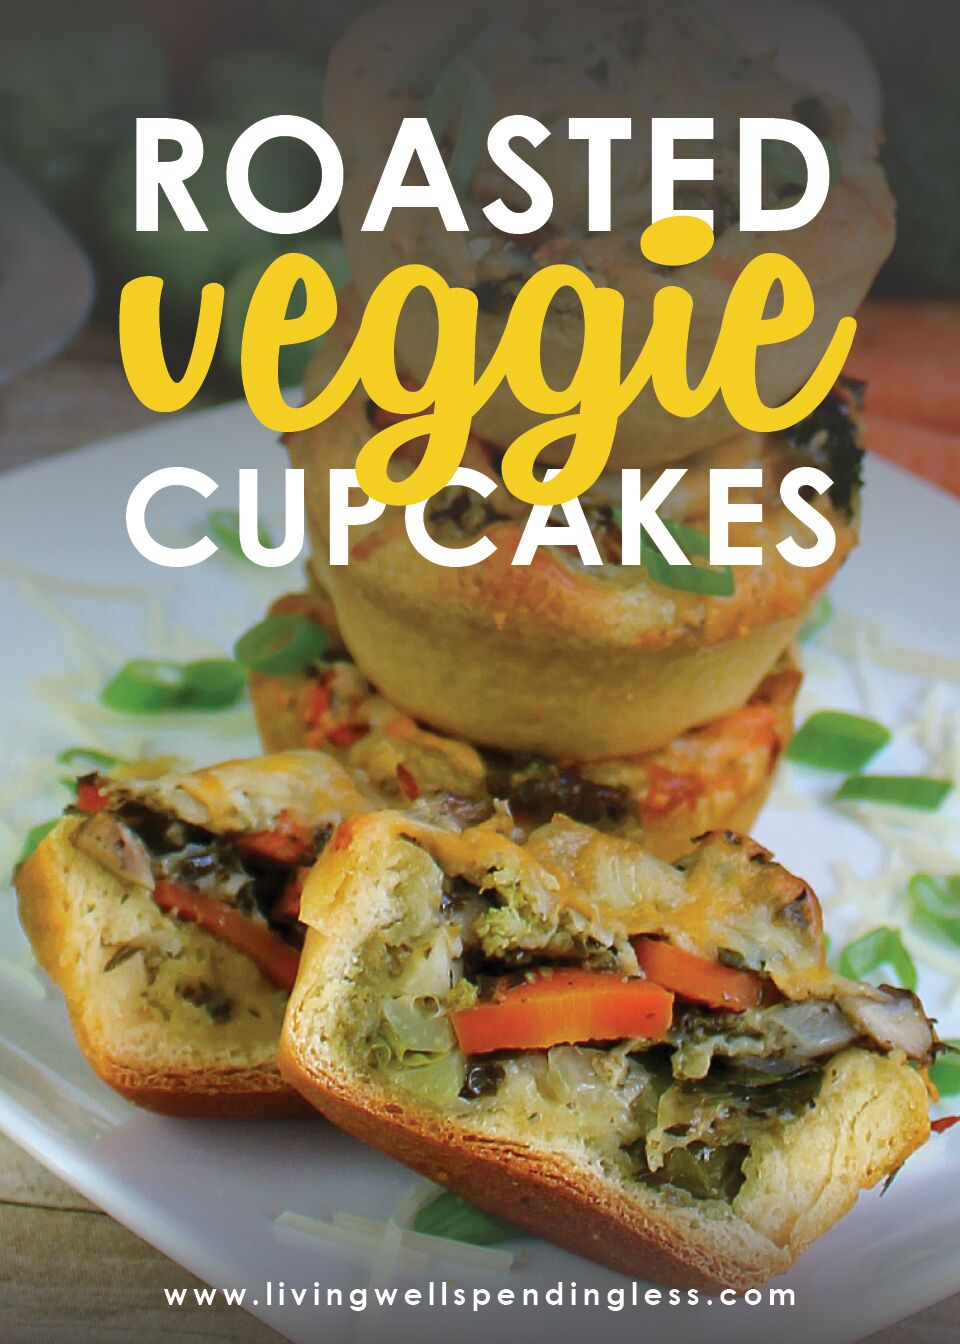 Looking for an easy way to get your kids to eat more vegetables? These simple roasted veggie cupcakes may be just the ticket! My husband and 2 girls went absolutely crazy for this recipe. They polished off their plates 2 nights in a row--practically licking them clean--even though it was chock full of things like Brussels sprouts, broccoli, & mushrooms!